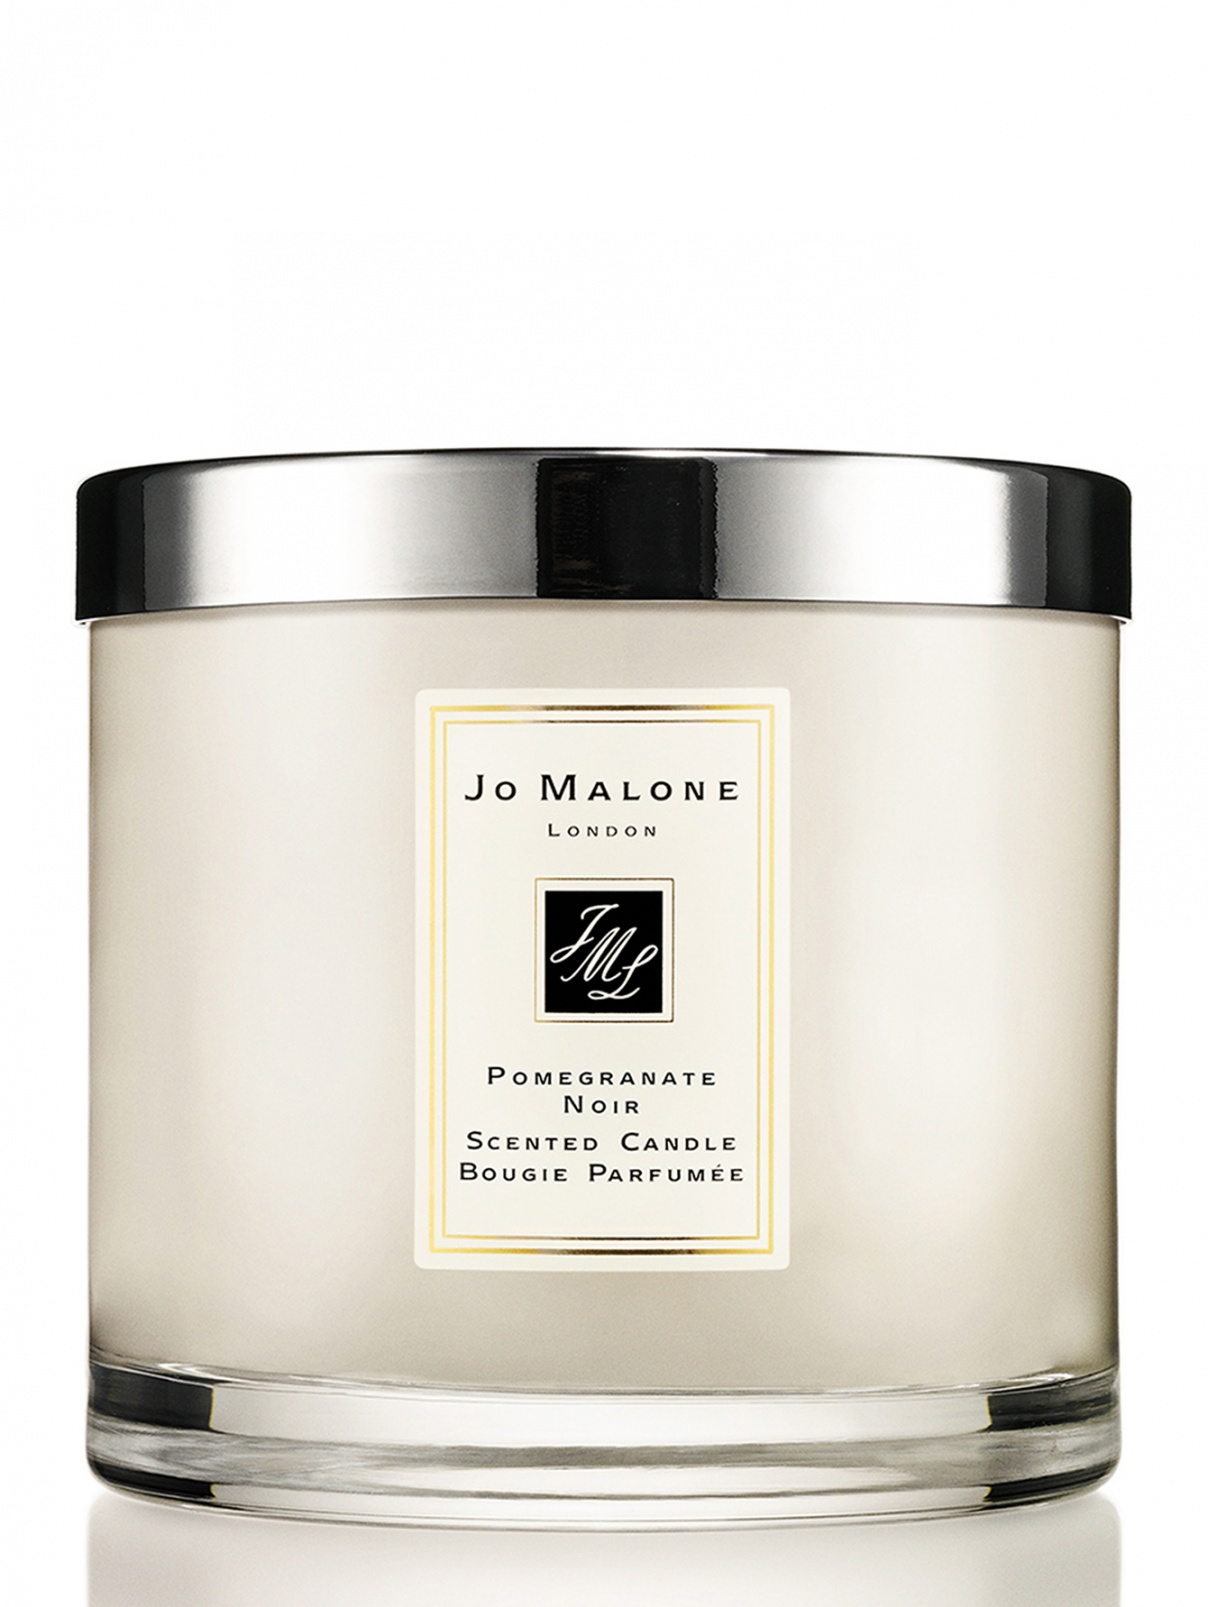 Свеча - Pomegranate Noir, Deluxe Candles Jo Malone  –  Общий вид